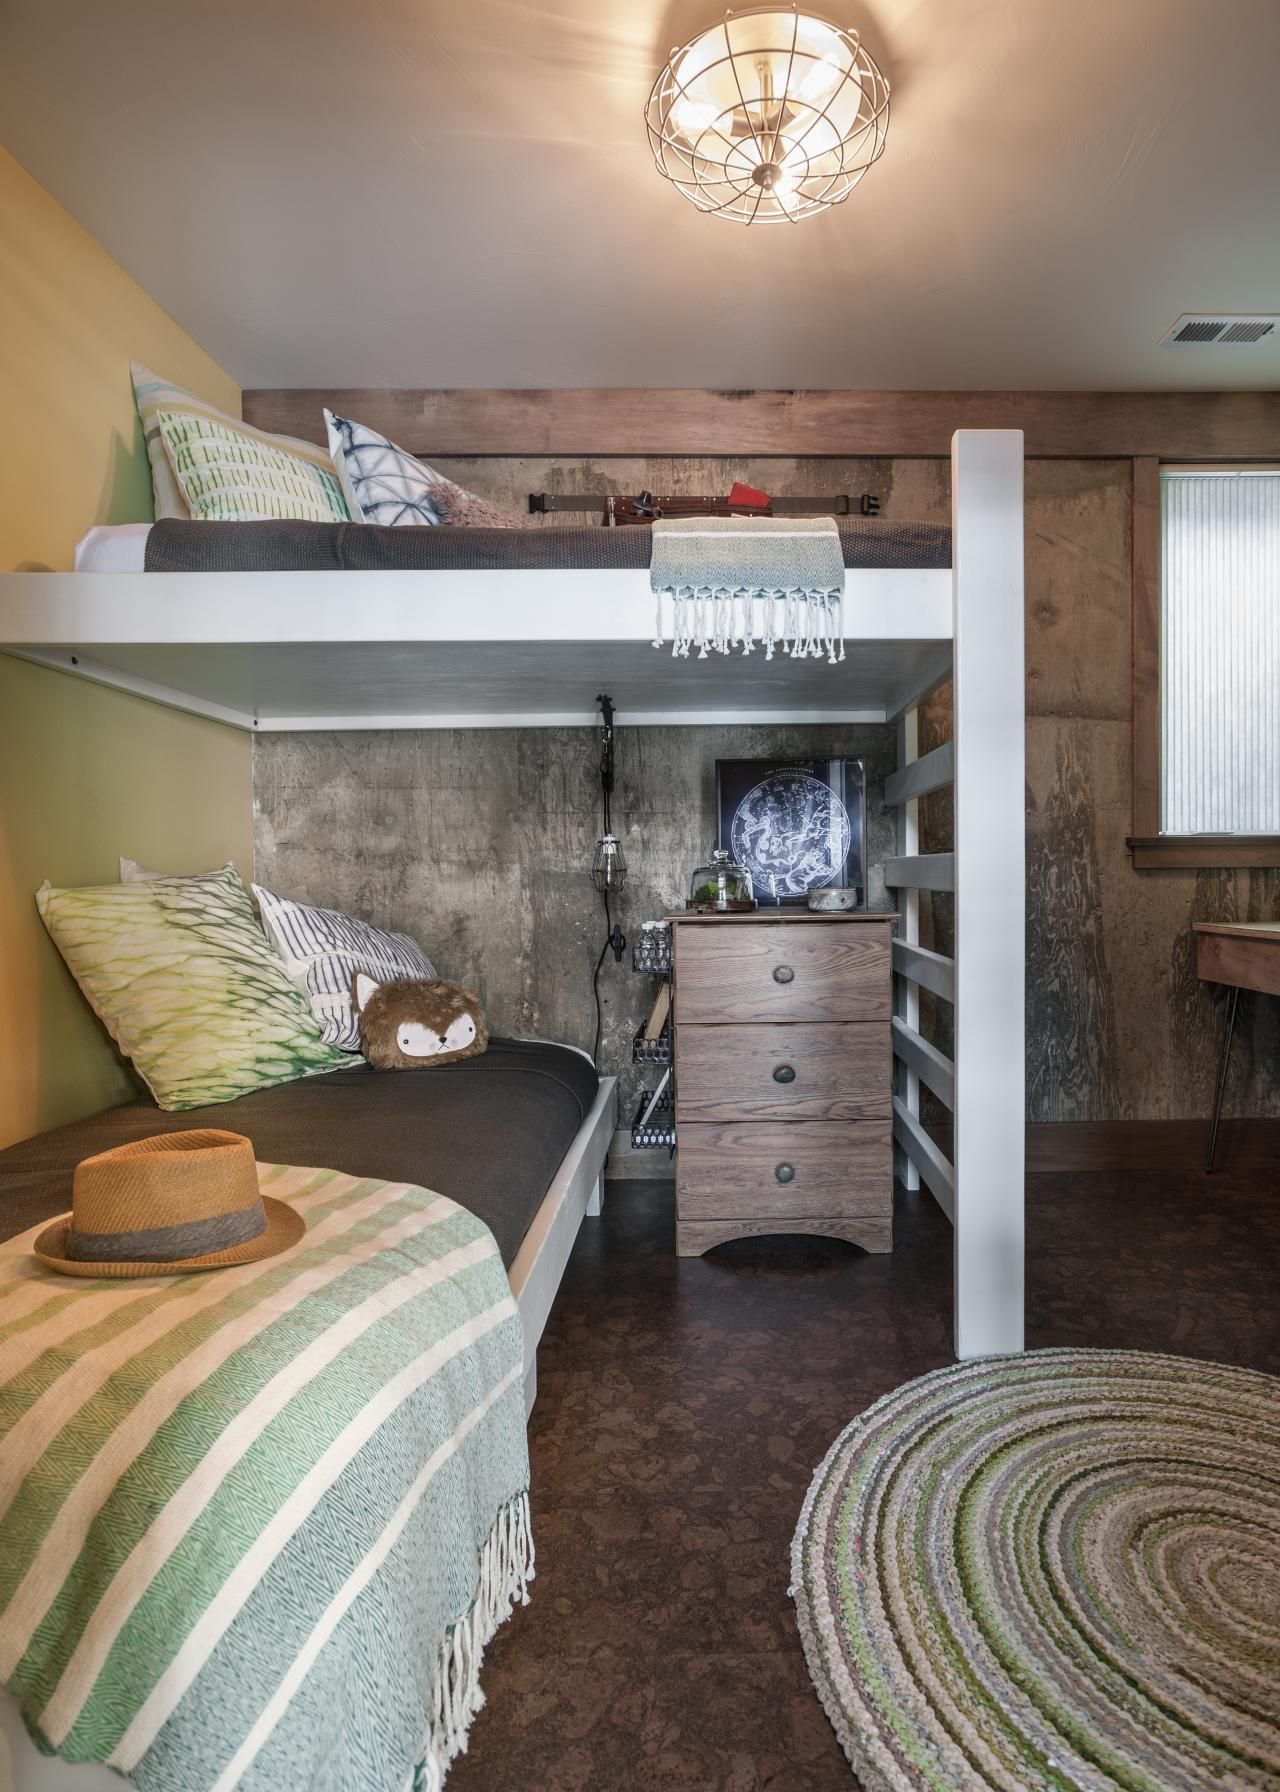 Bunk Bed Designs For Kids Room: The Bunk Area Is One Of Design Coordinator Laurie March's